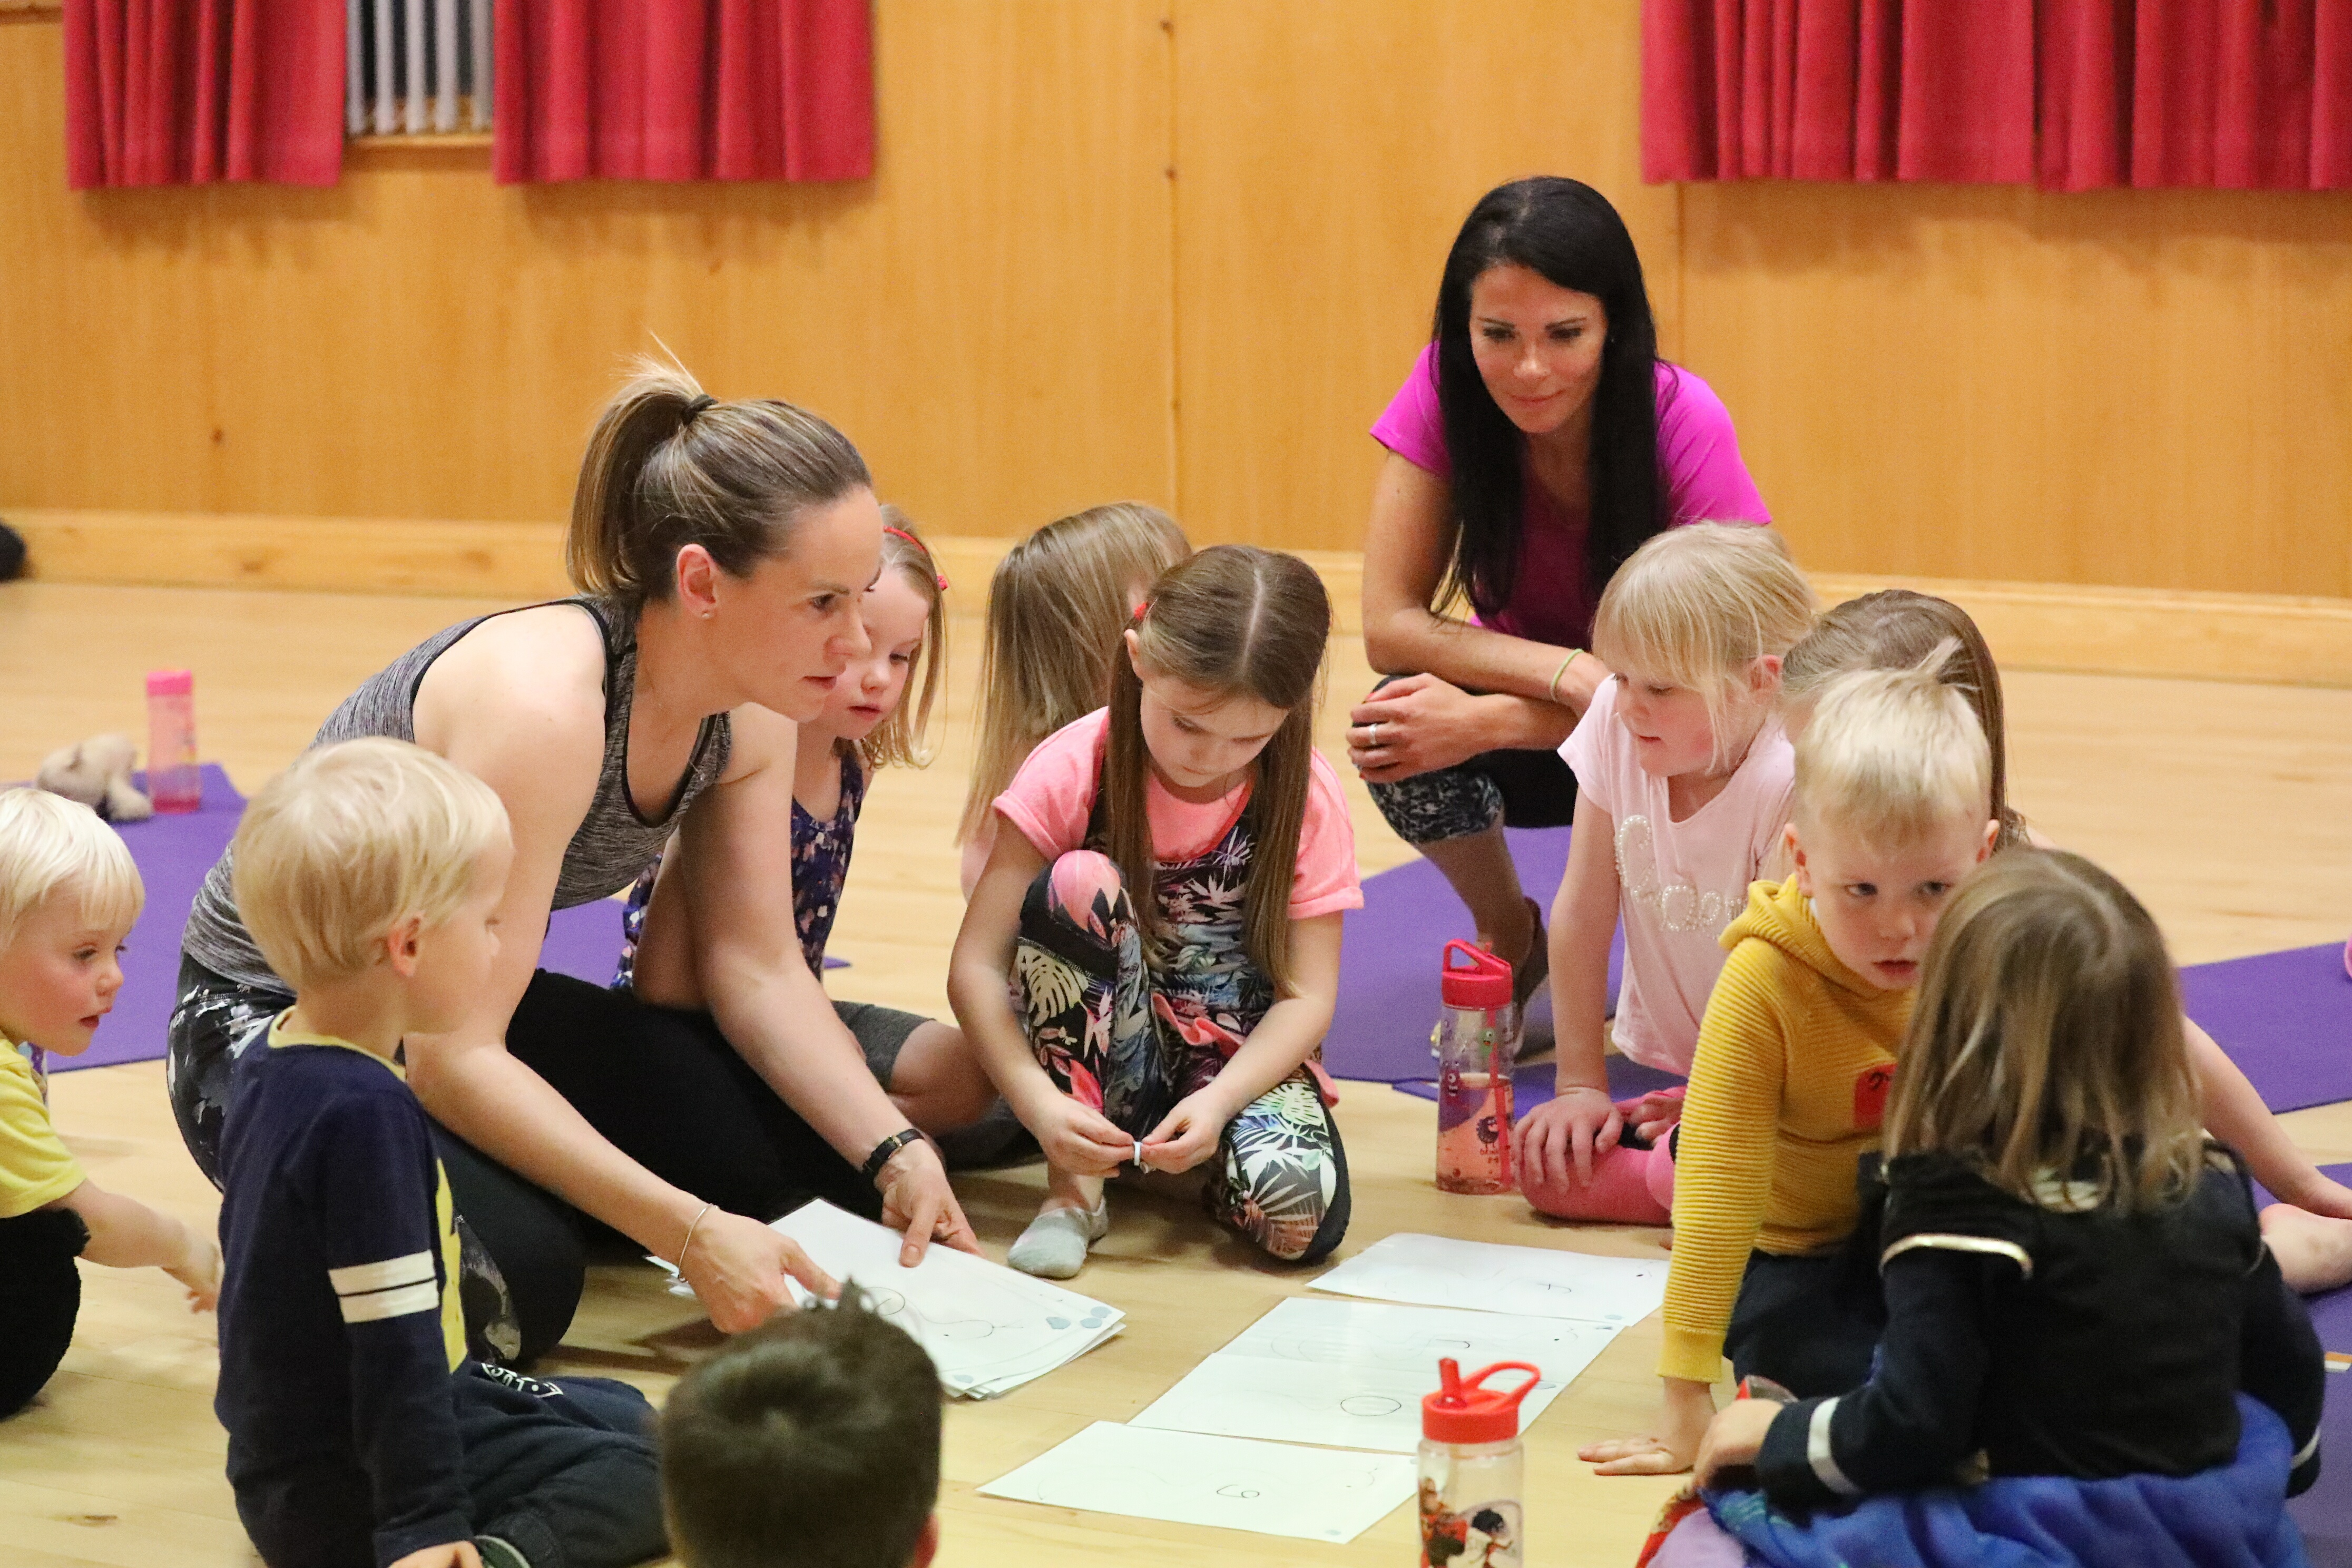 Gayle joins in a children's yoga class run by Linda Mackie ikn Wellbank Village Hall in Angus.